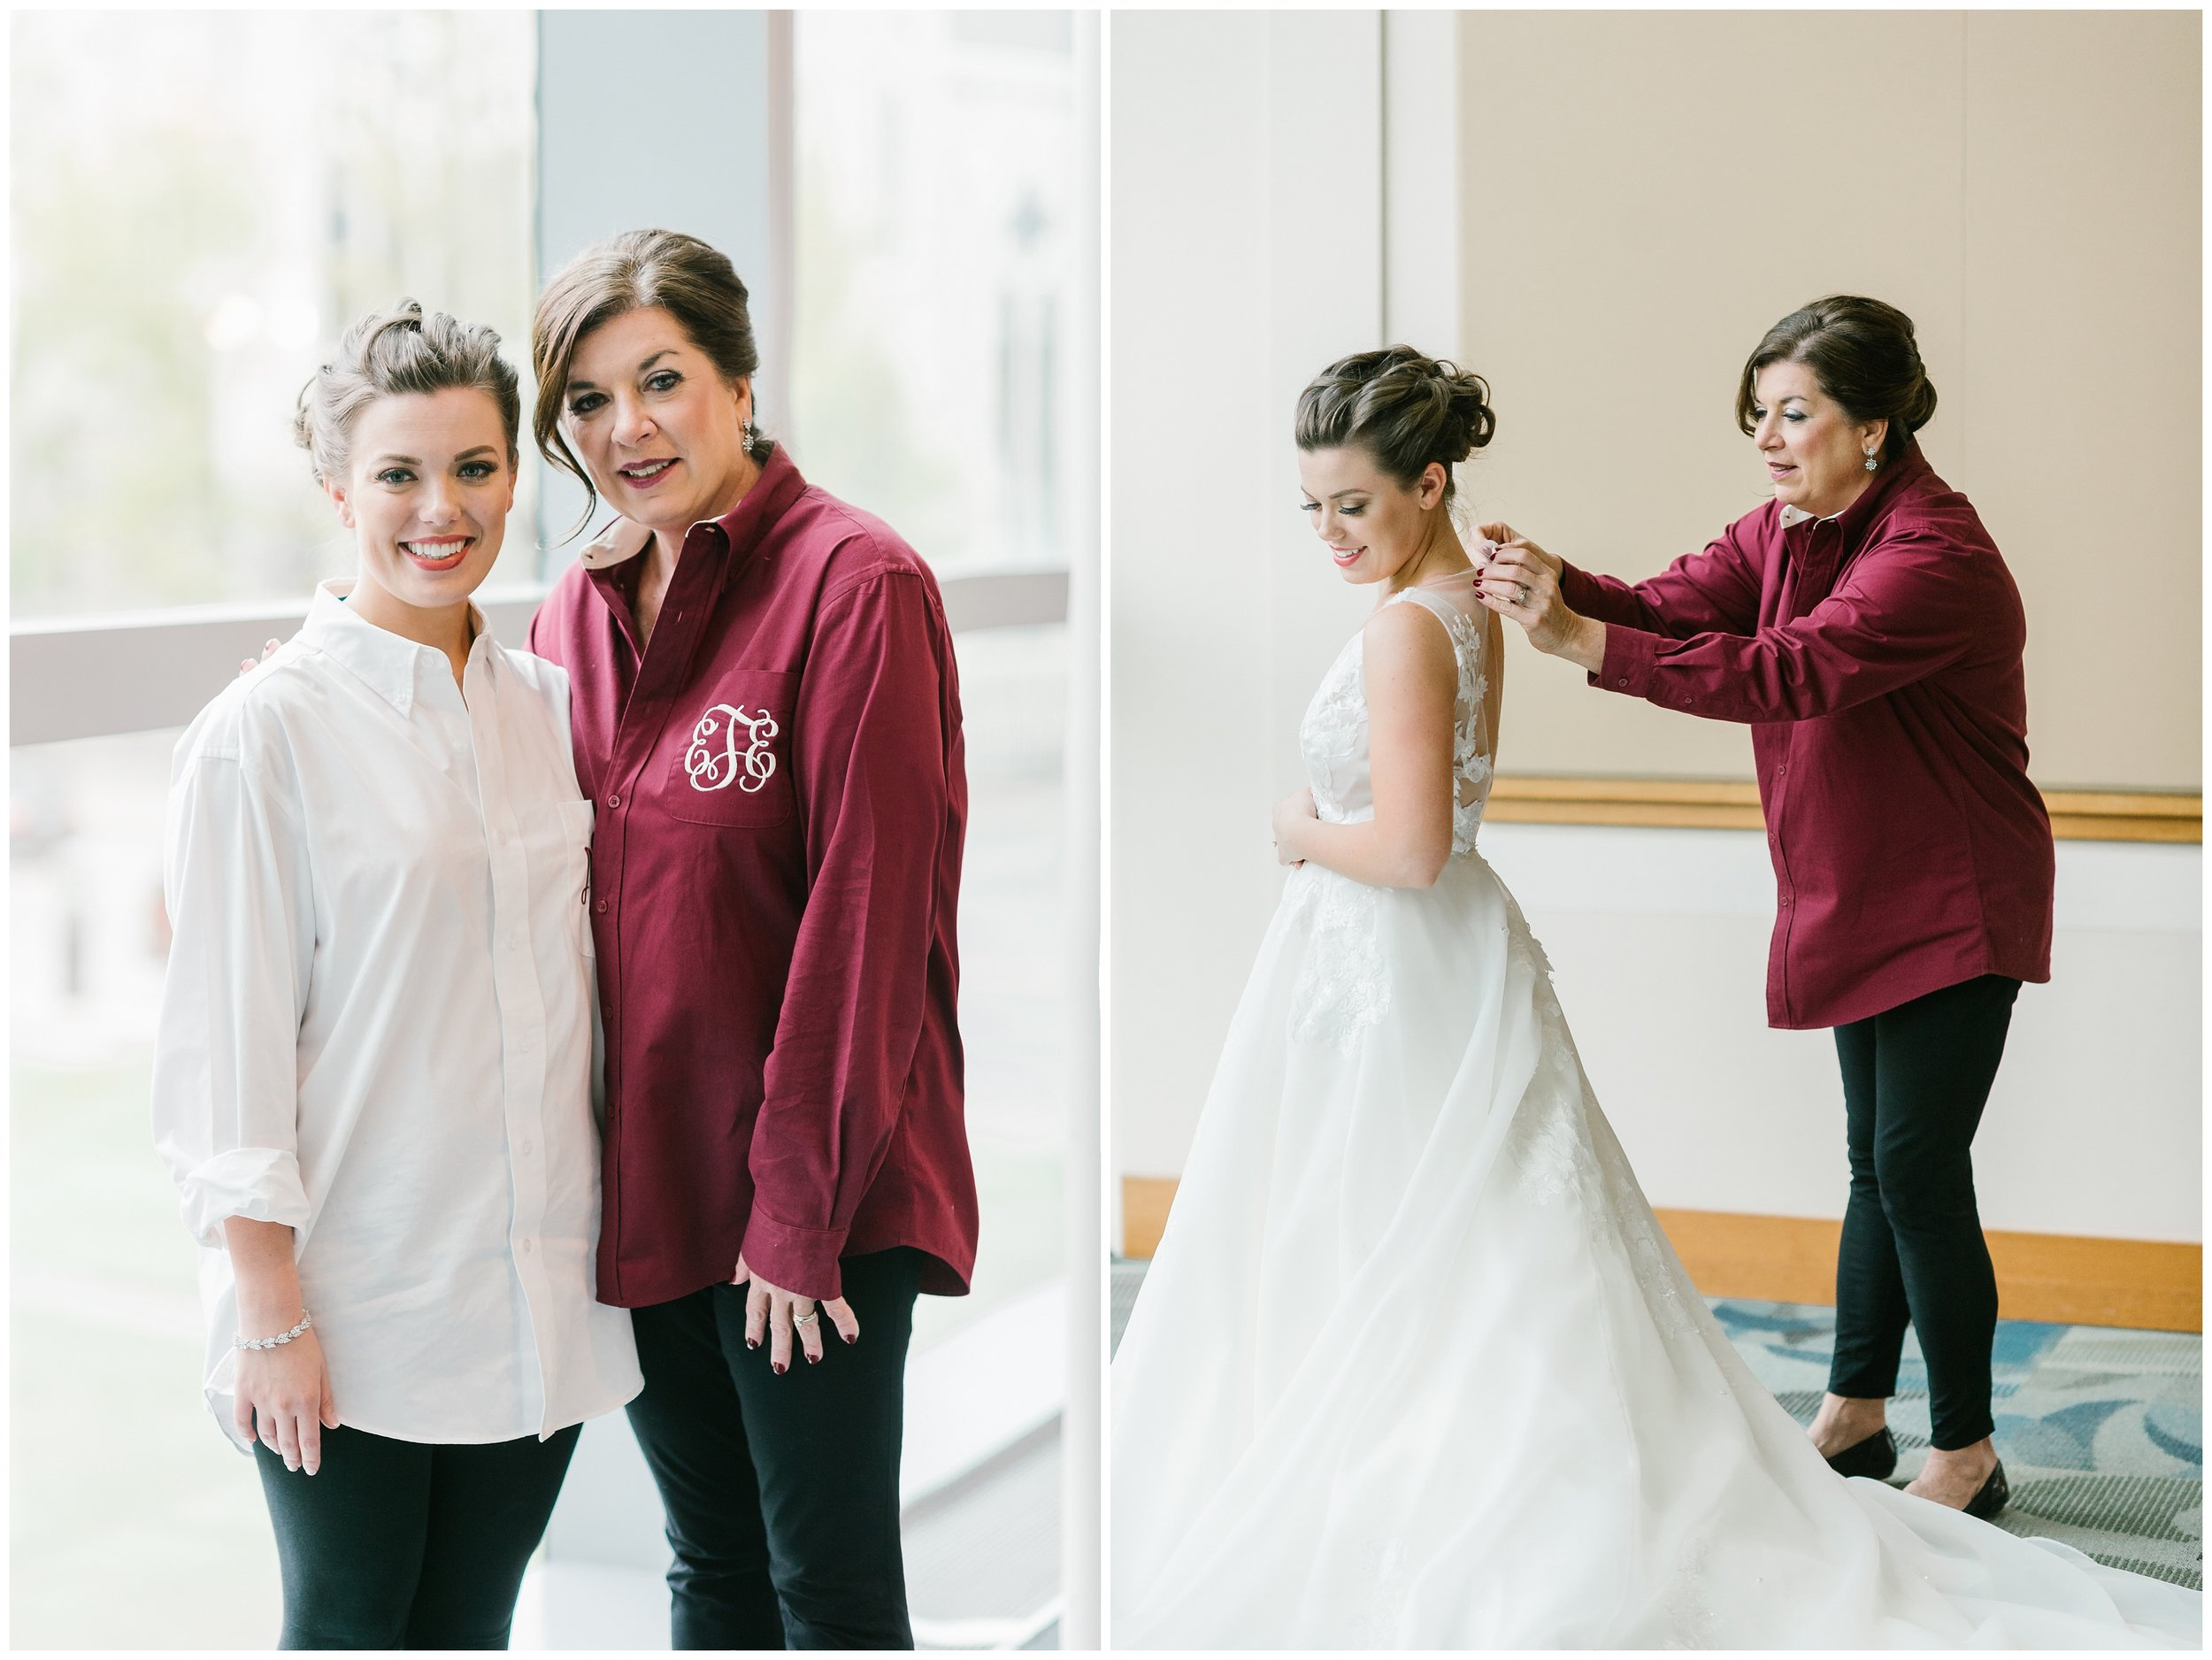 Rebecca_Shehorn_Photography_Indianapolis_Wedding_Photographer_7703.jpg